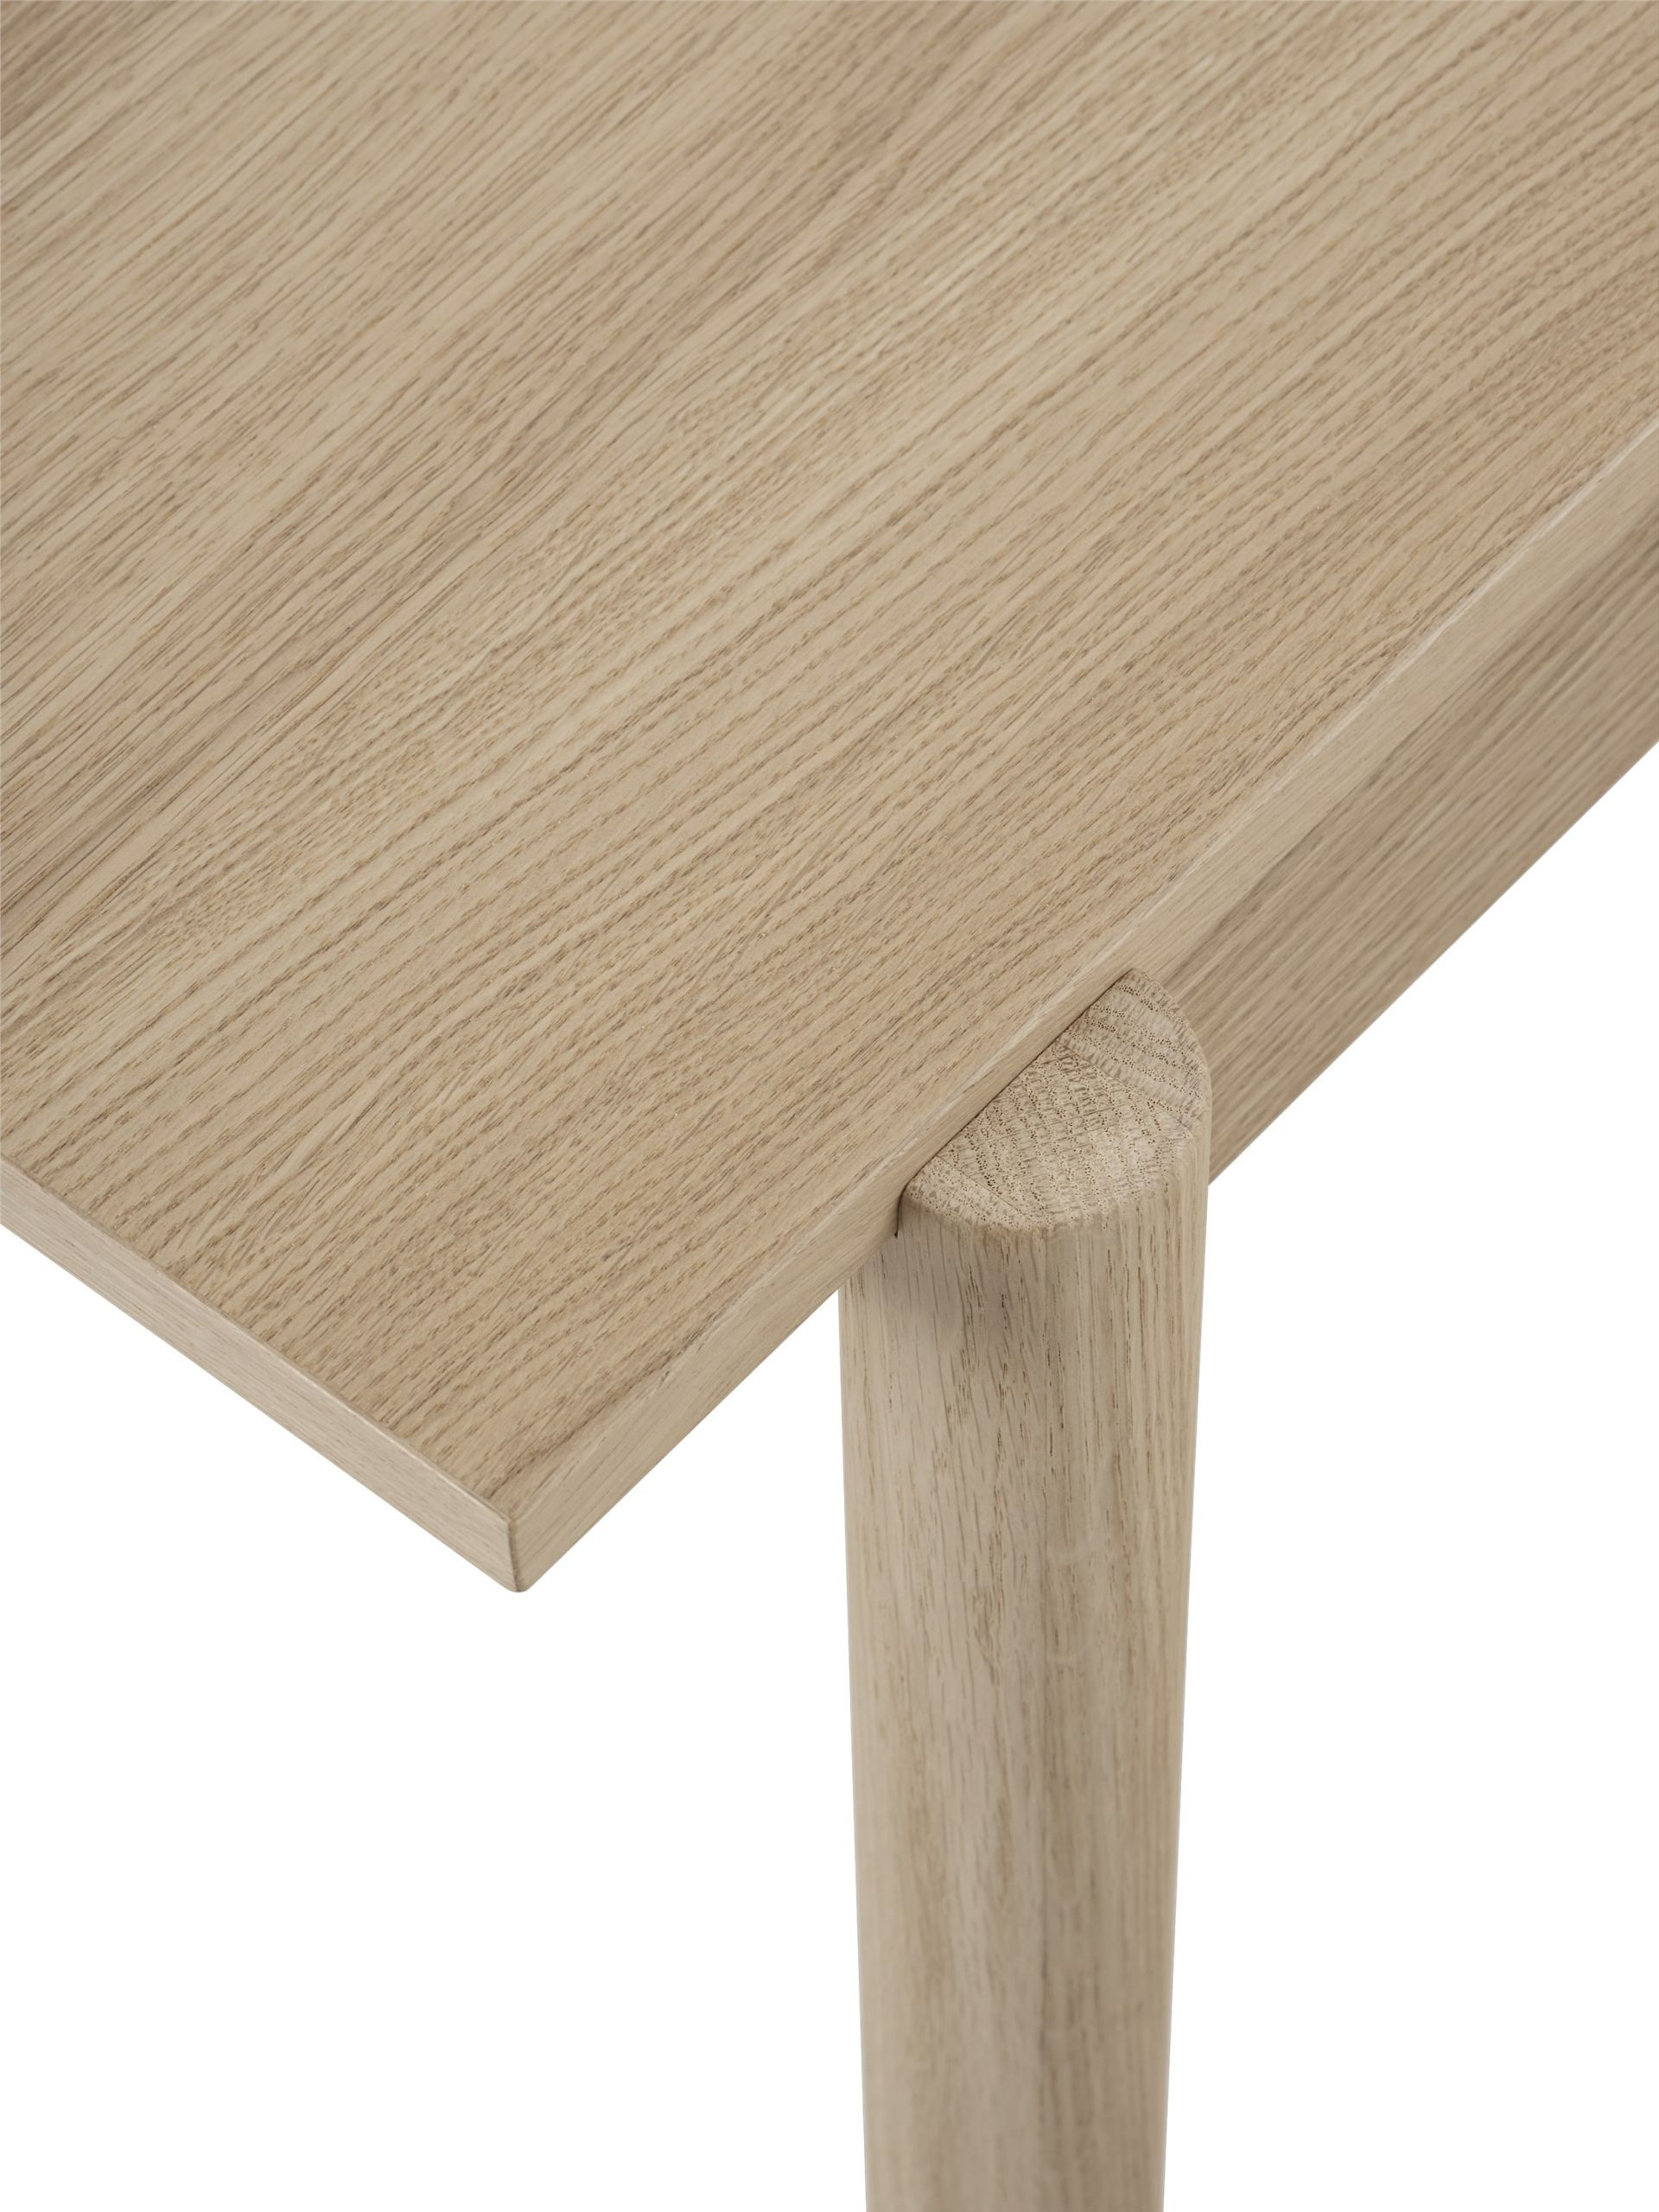 Muuto Linear Wood Table 260